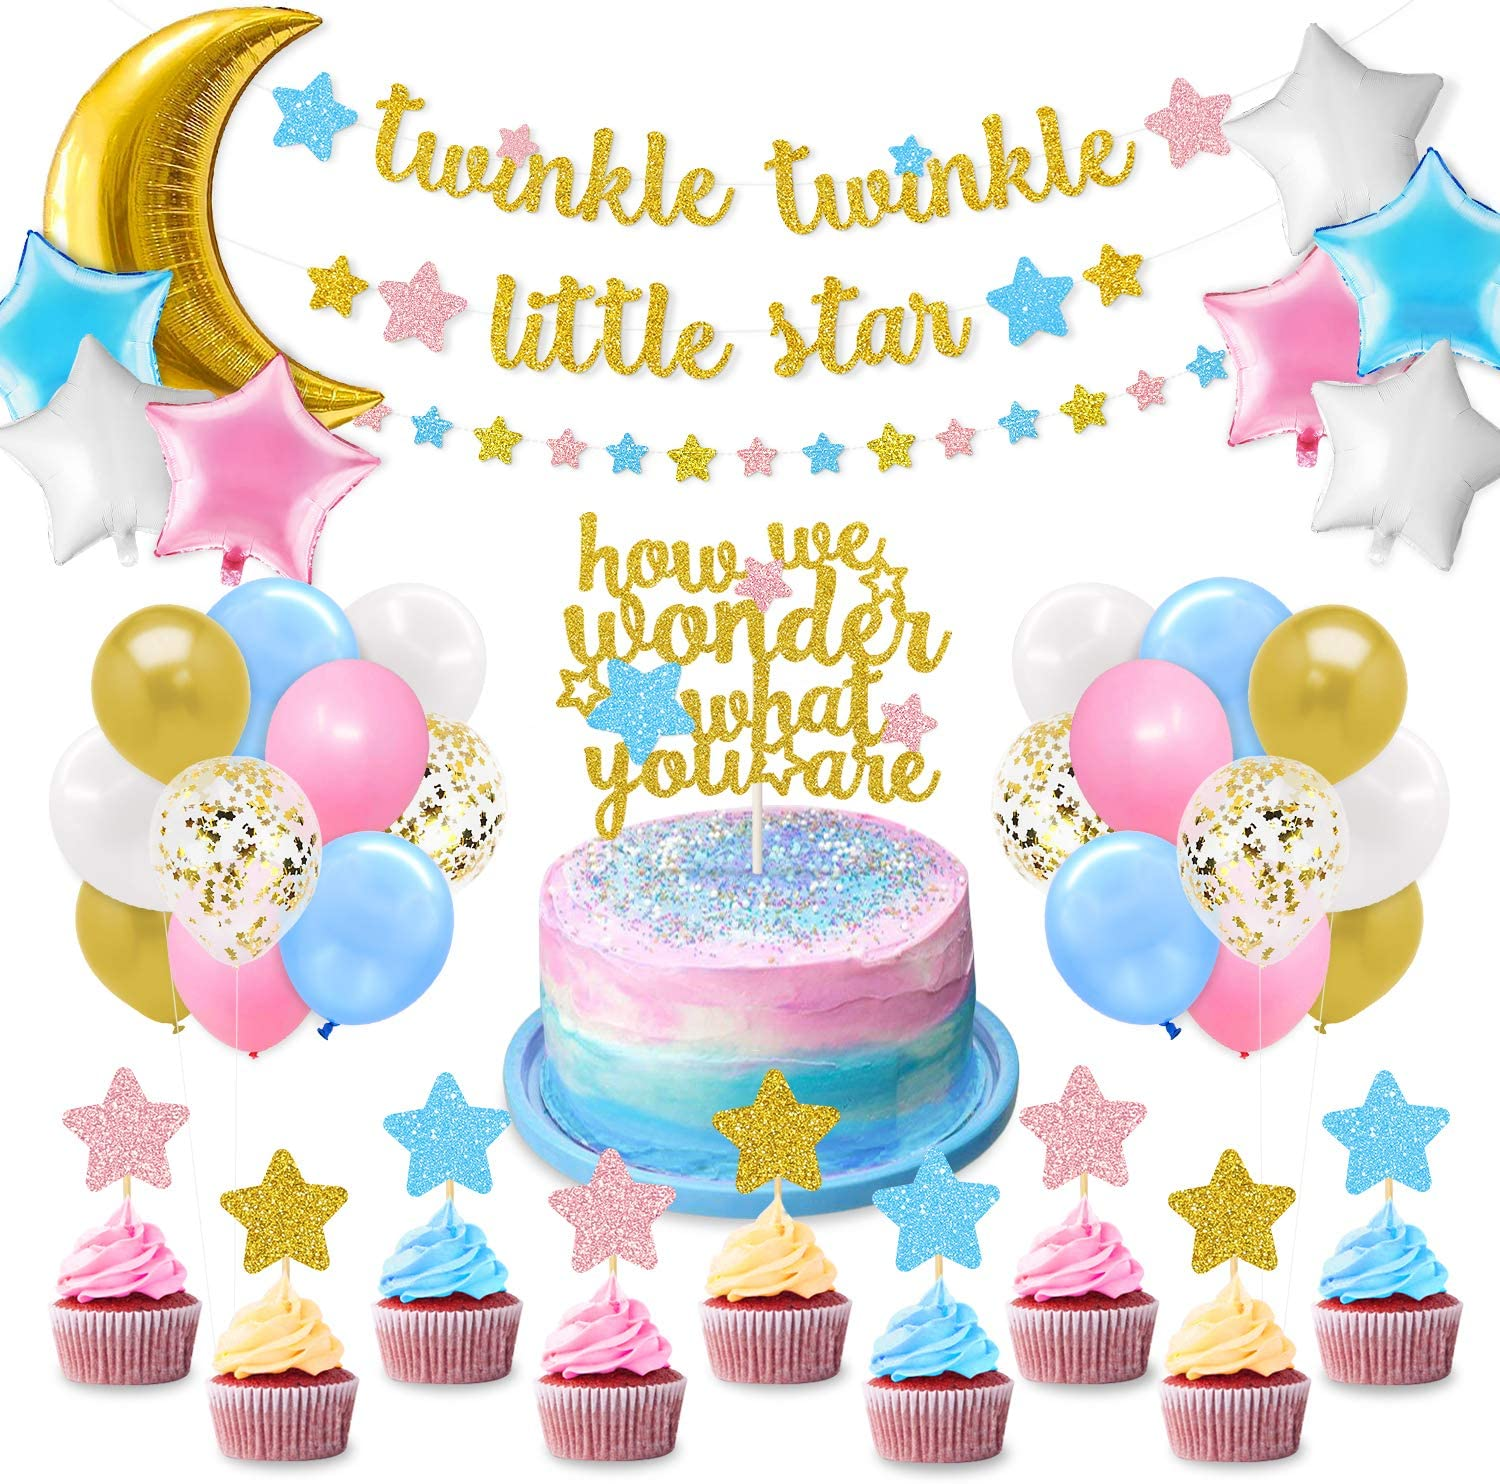 Twinkle Twinkle Little Star Party Decorations from images-na.ssl-images-amazon.com